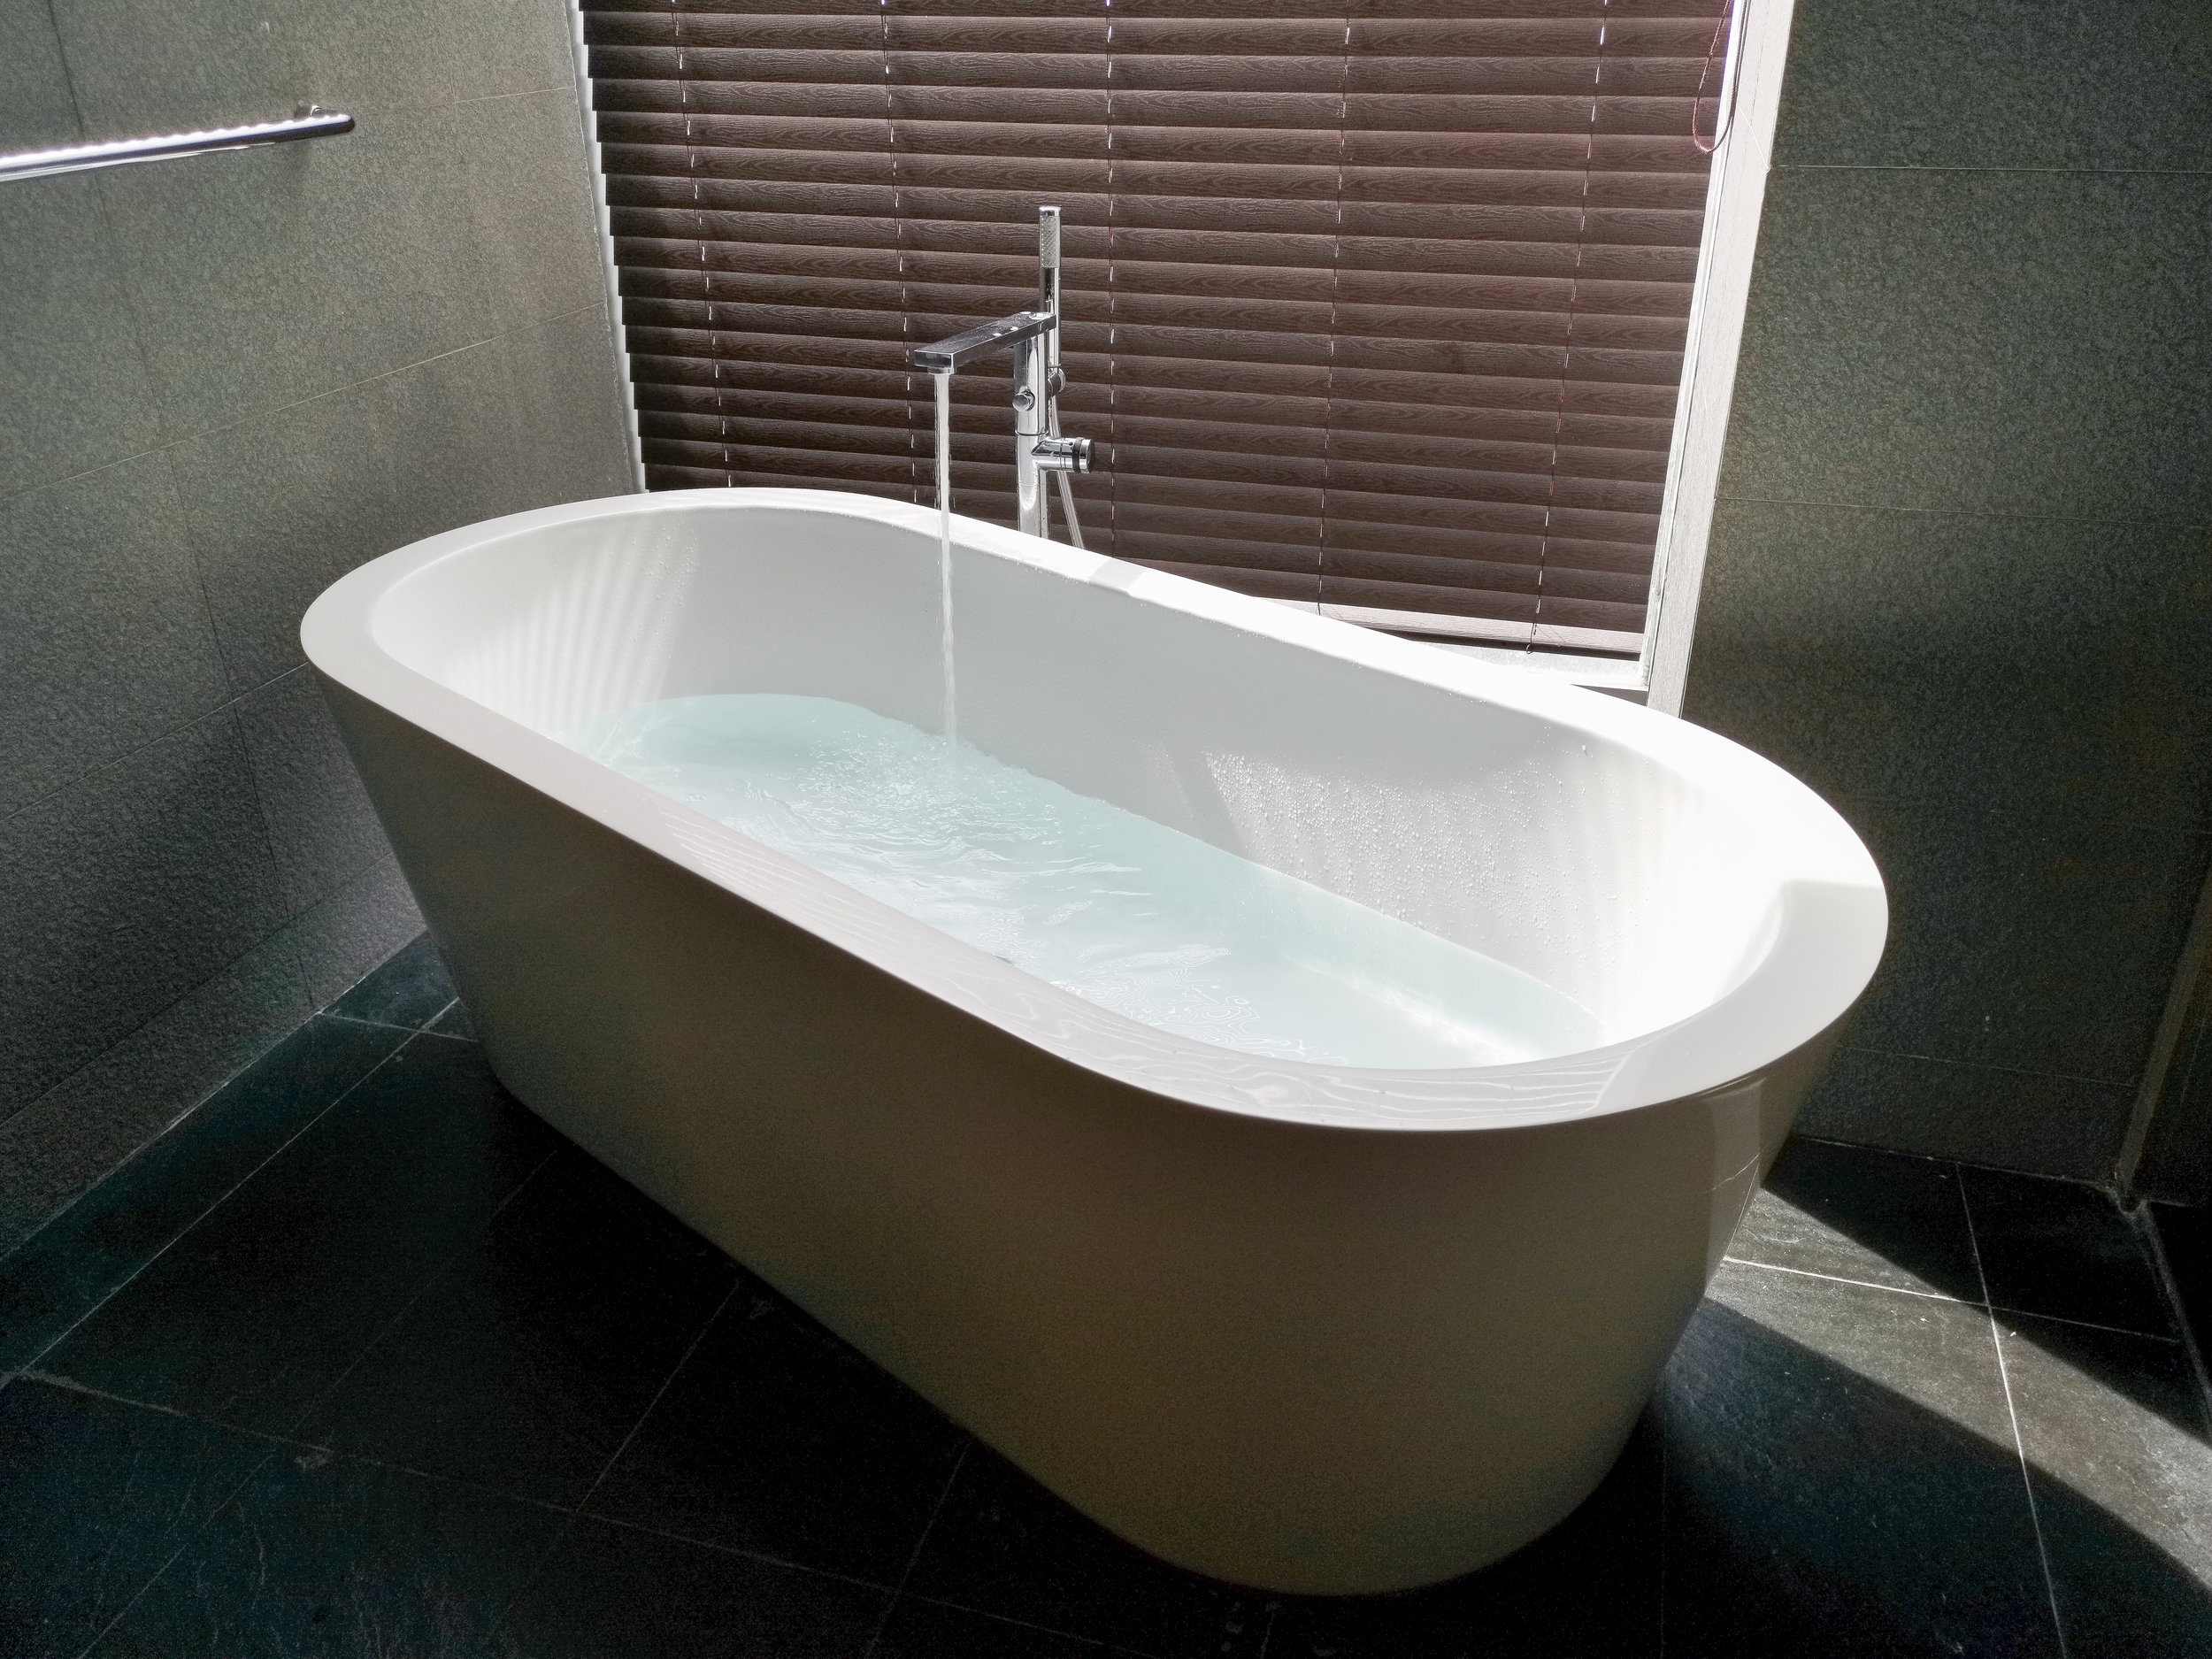 The awesome tub!